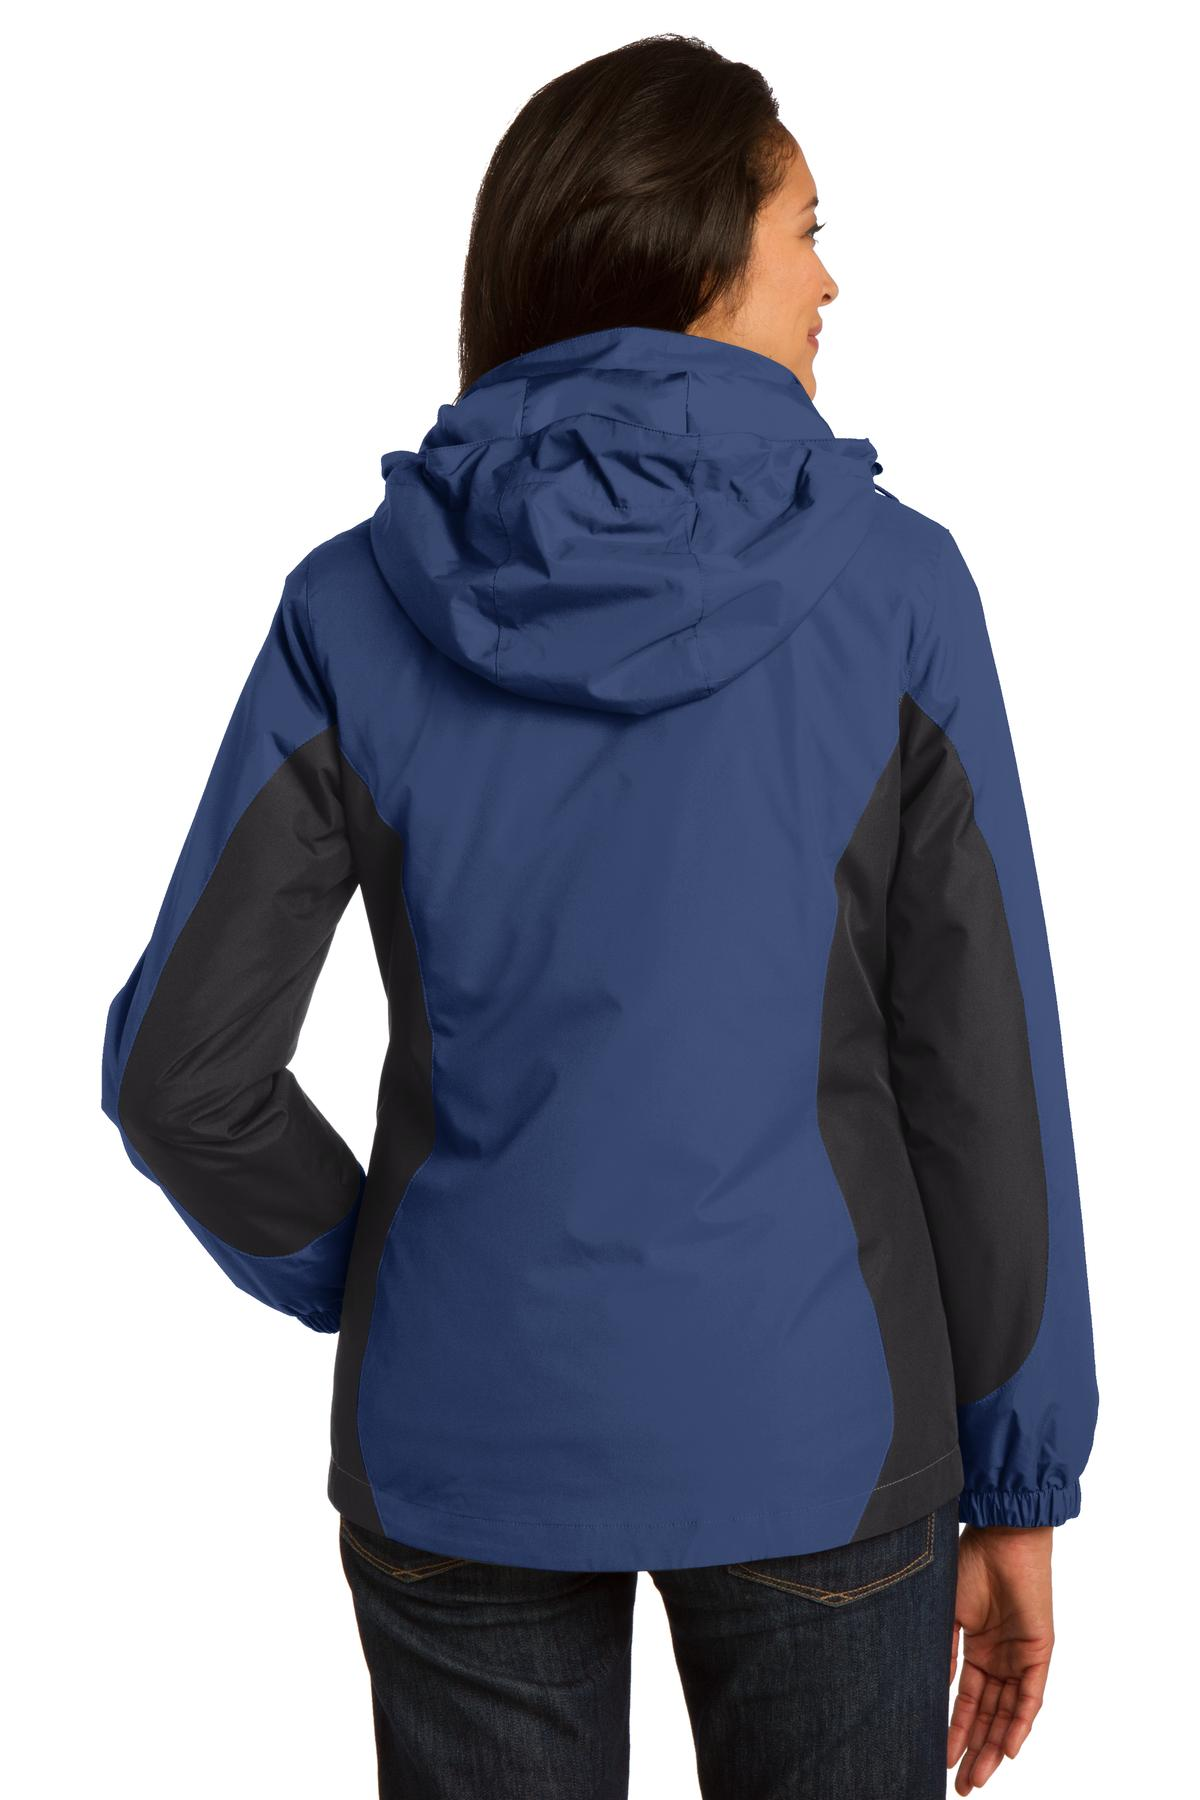 Ladies Colorblock 3-in-1 Jacket - RCL3090